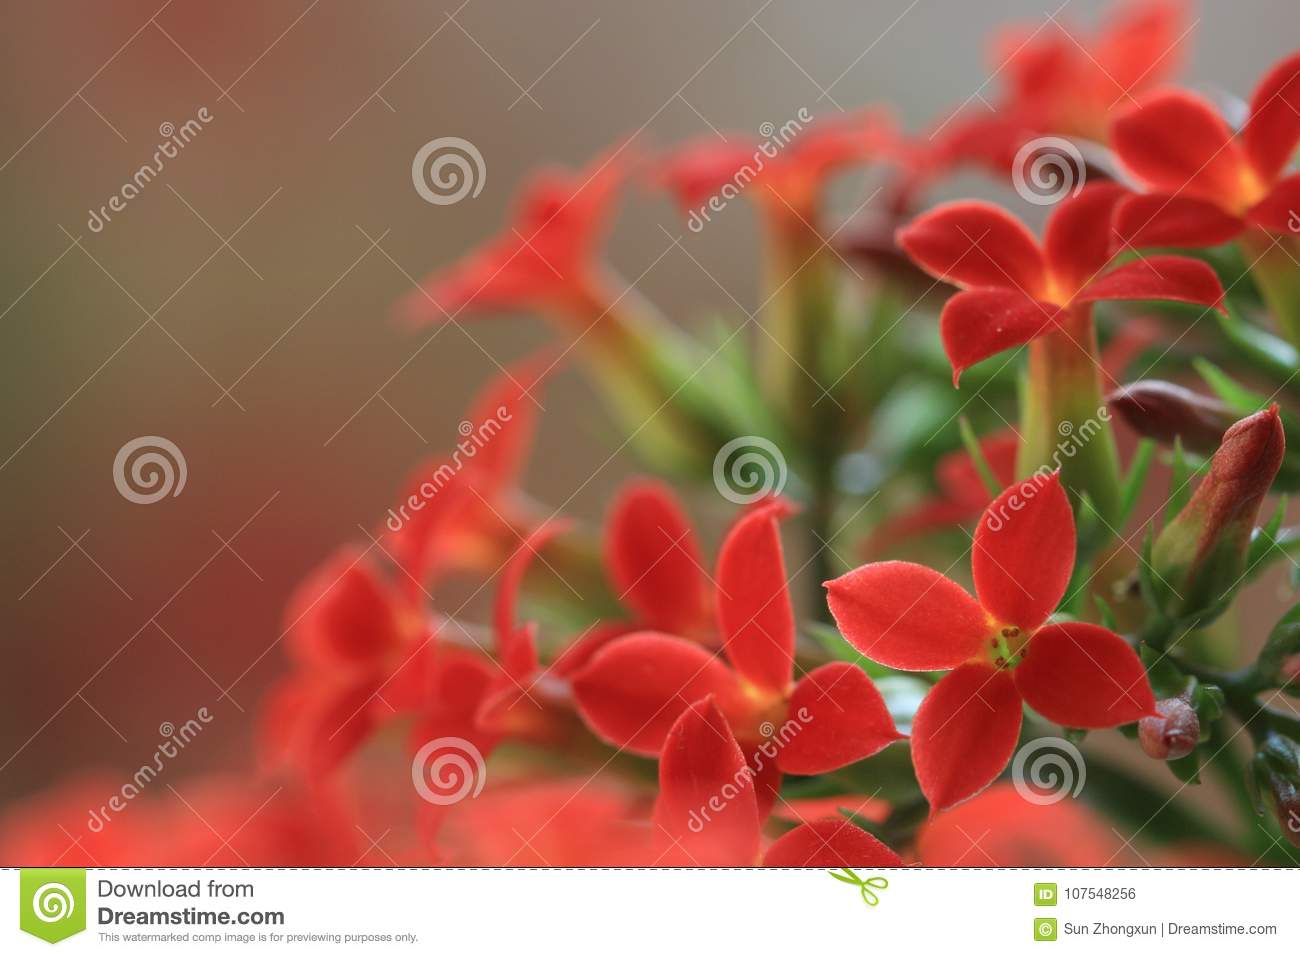 Garan dishlongevity flowers stock photo image of meaning implied meaning of plant culture is considered auspicious longevity lucky flower another name for longevity flowers izmirmasajfo